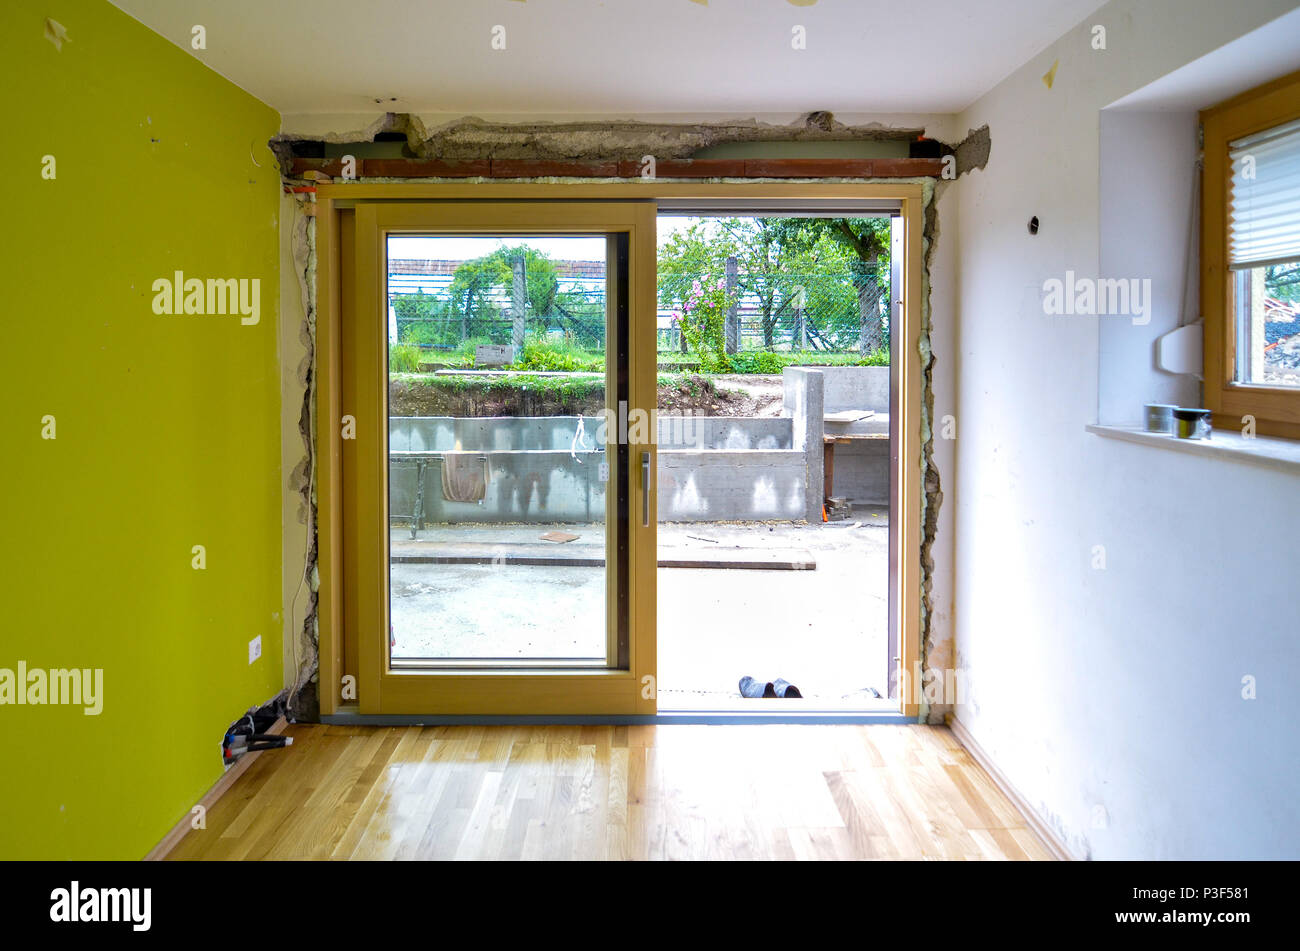 Replacing Brick Wall With Glass Sliding Door In Residential House